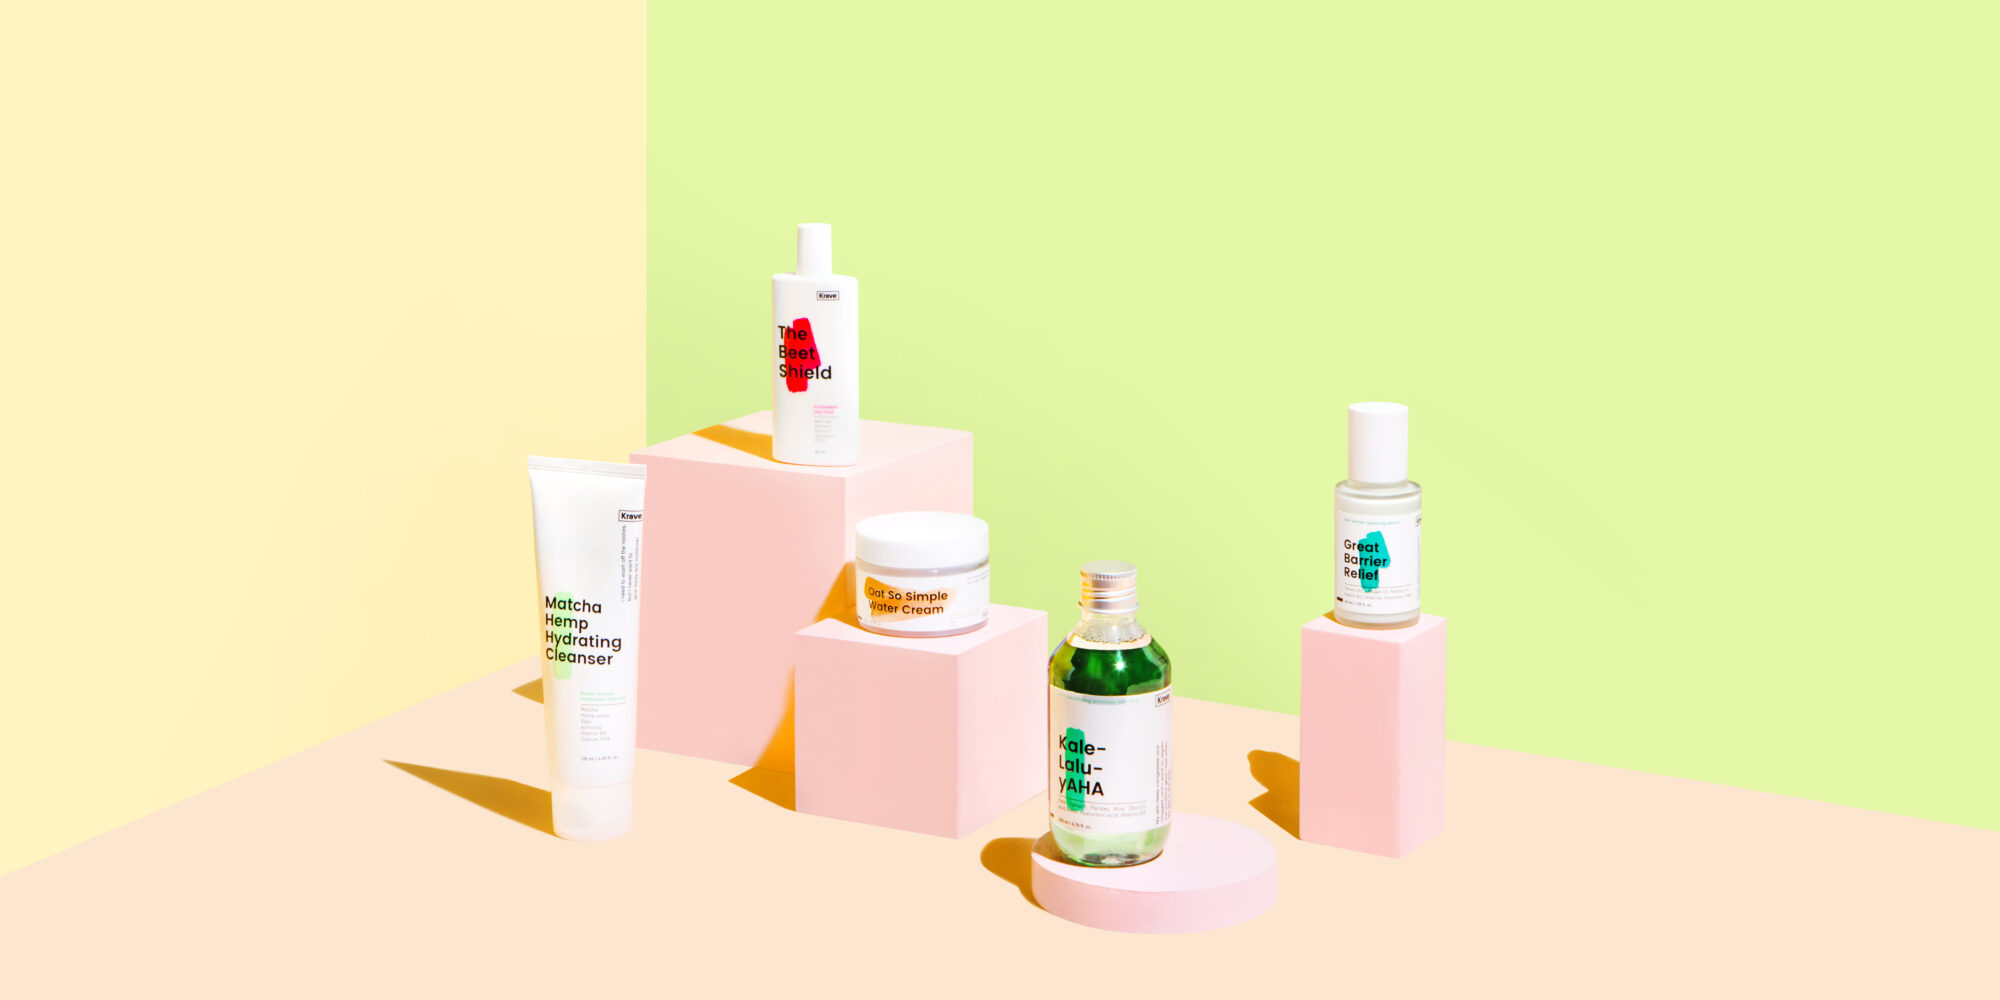 KraveBeauty Is Challenging The Beauty Industry To Take On Hyperconsumerism